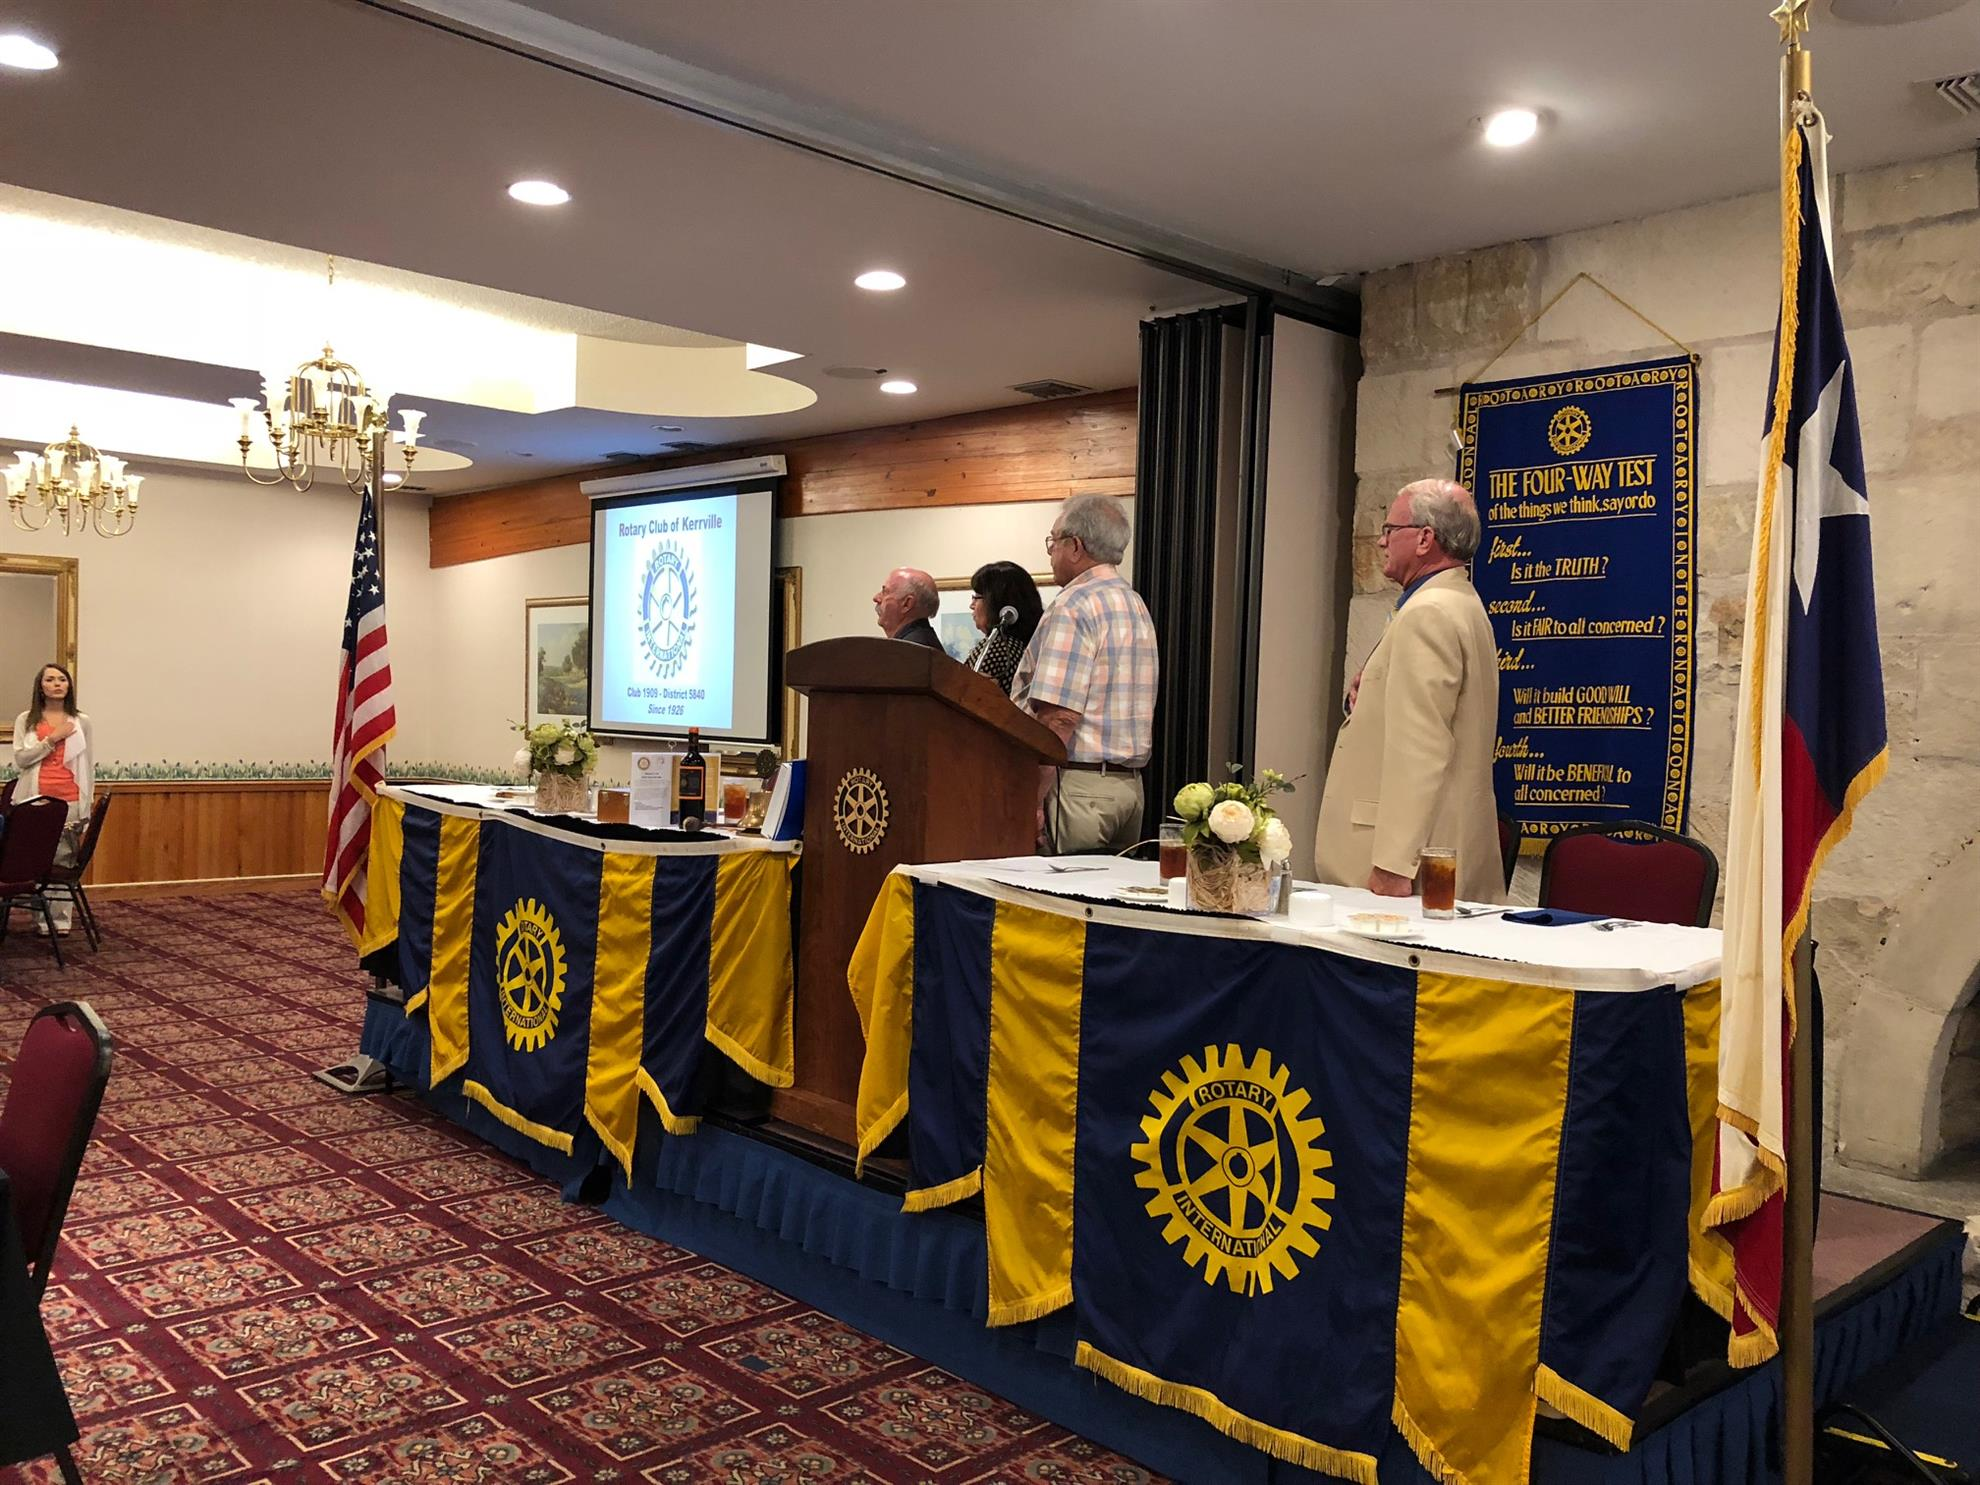 Stories Rotary Club Of Kerrville Paul Browne Two Ideas For Future Technology Integration In Stem Bill Crumrine Provided The Prayer And Pledge